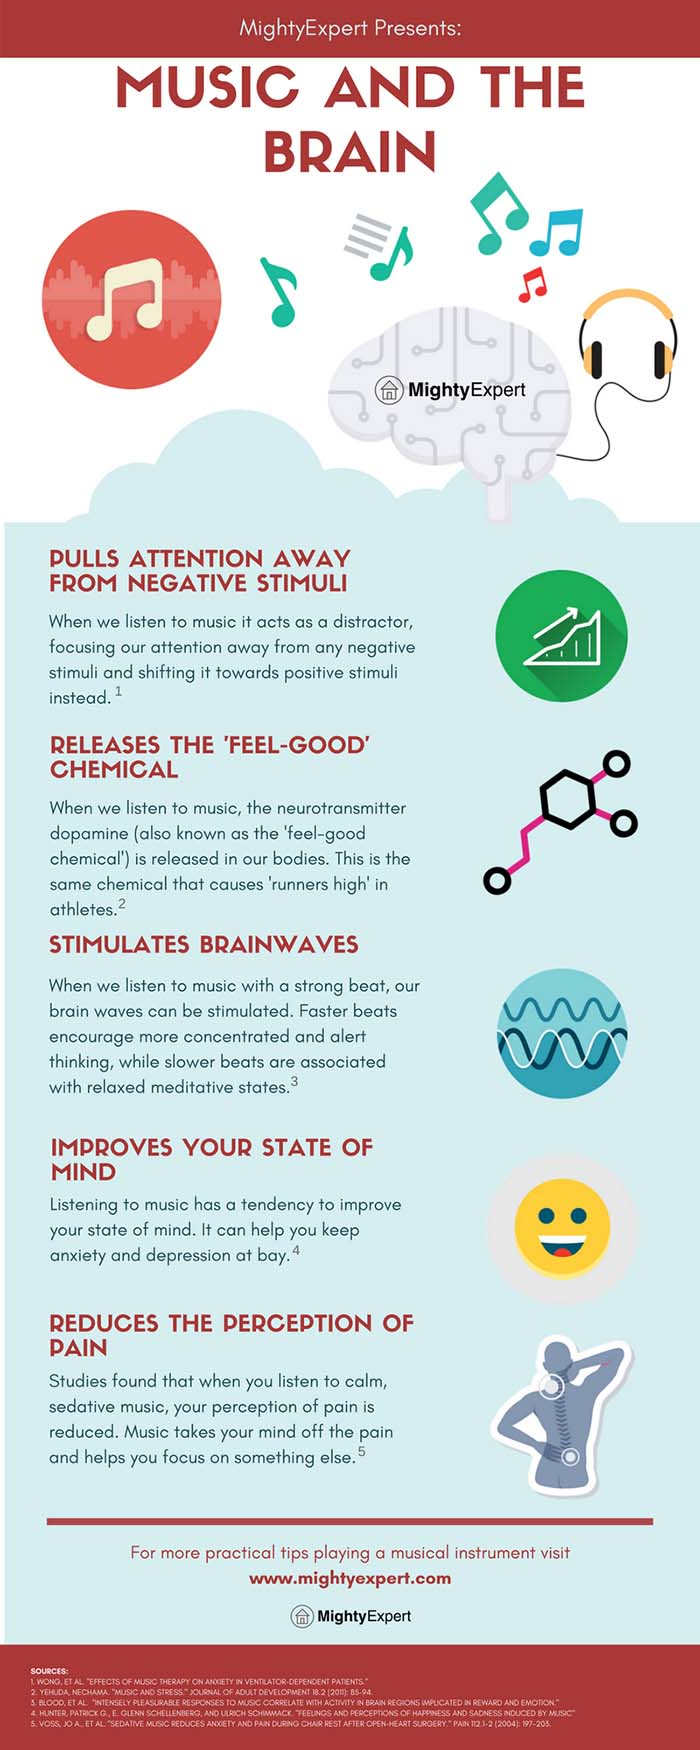 Music and the Brain Infographic (MightyExpert)